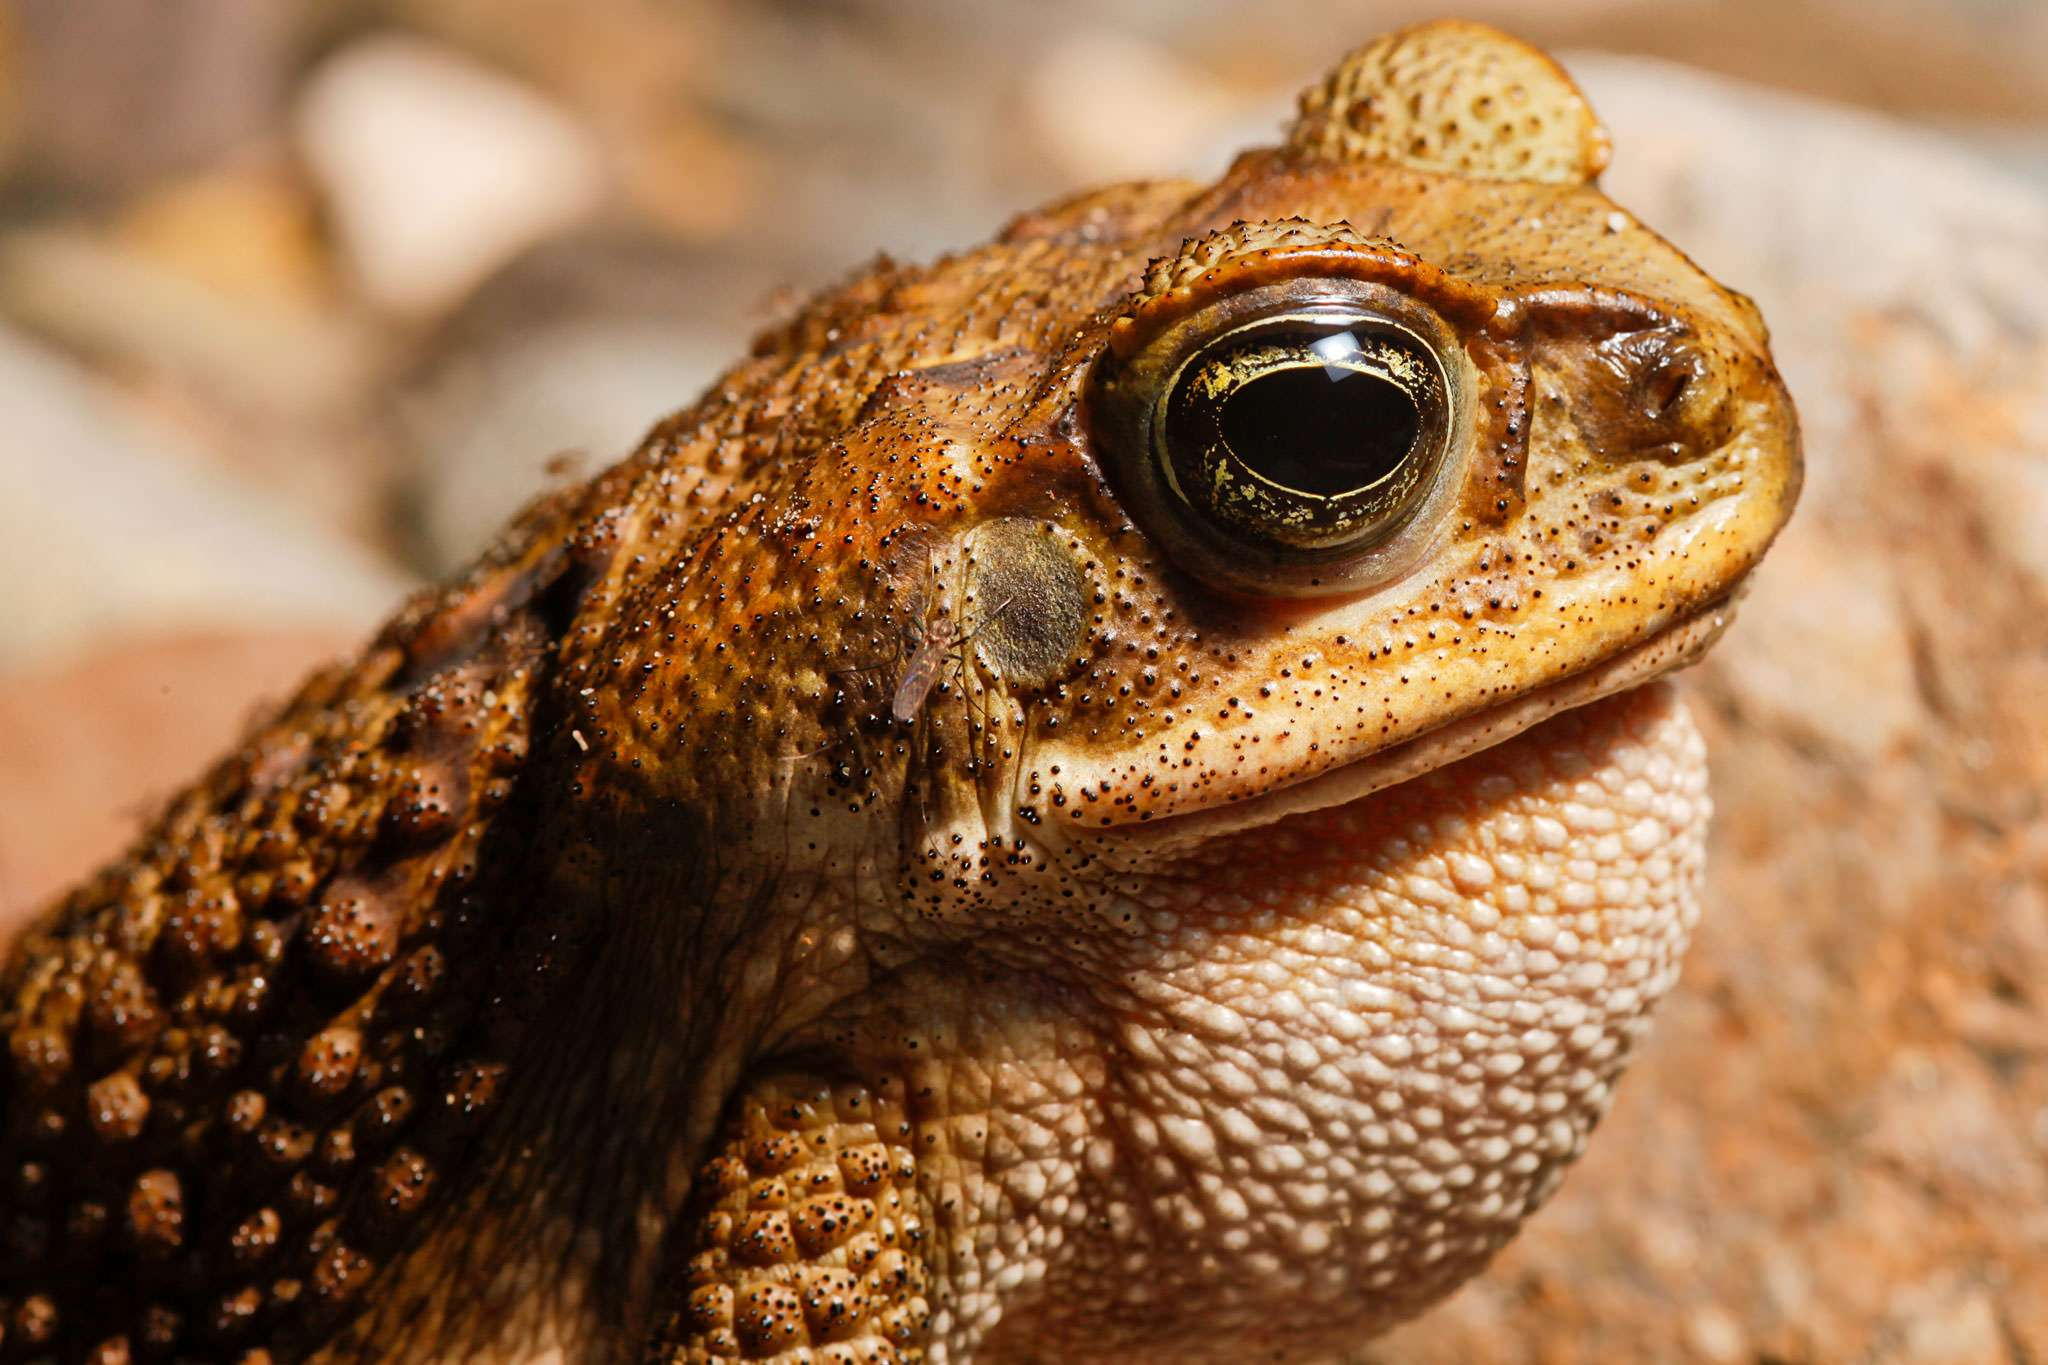 Australian animals cane toad pictures